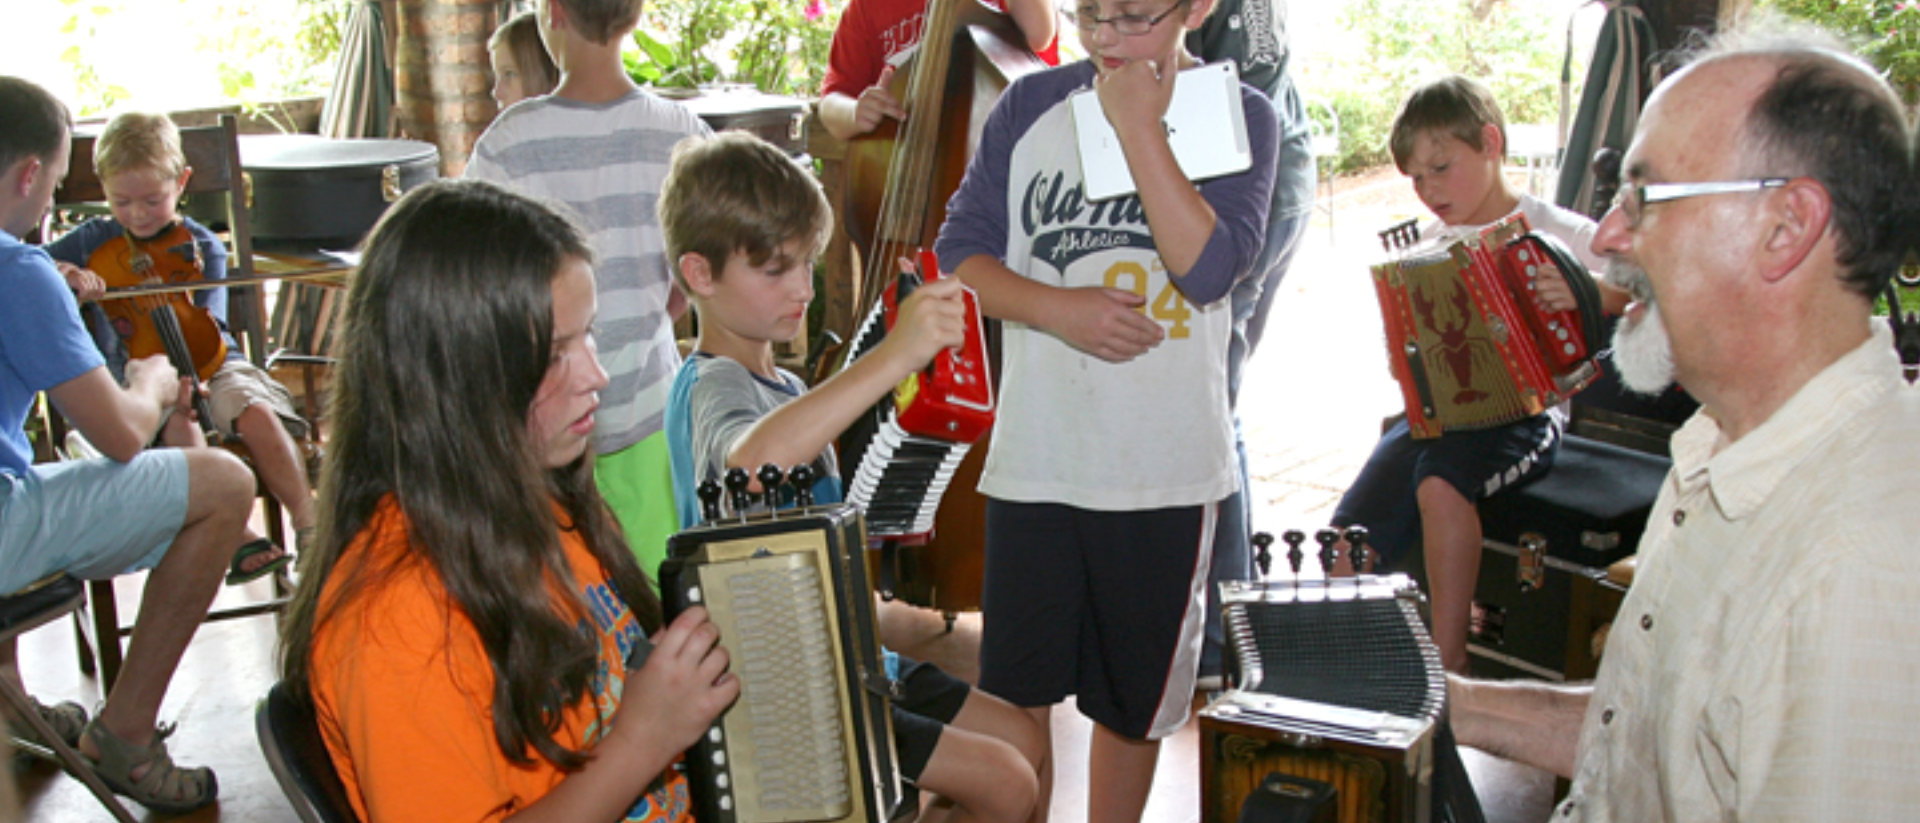 children playing music instruments